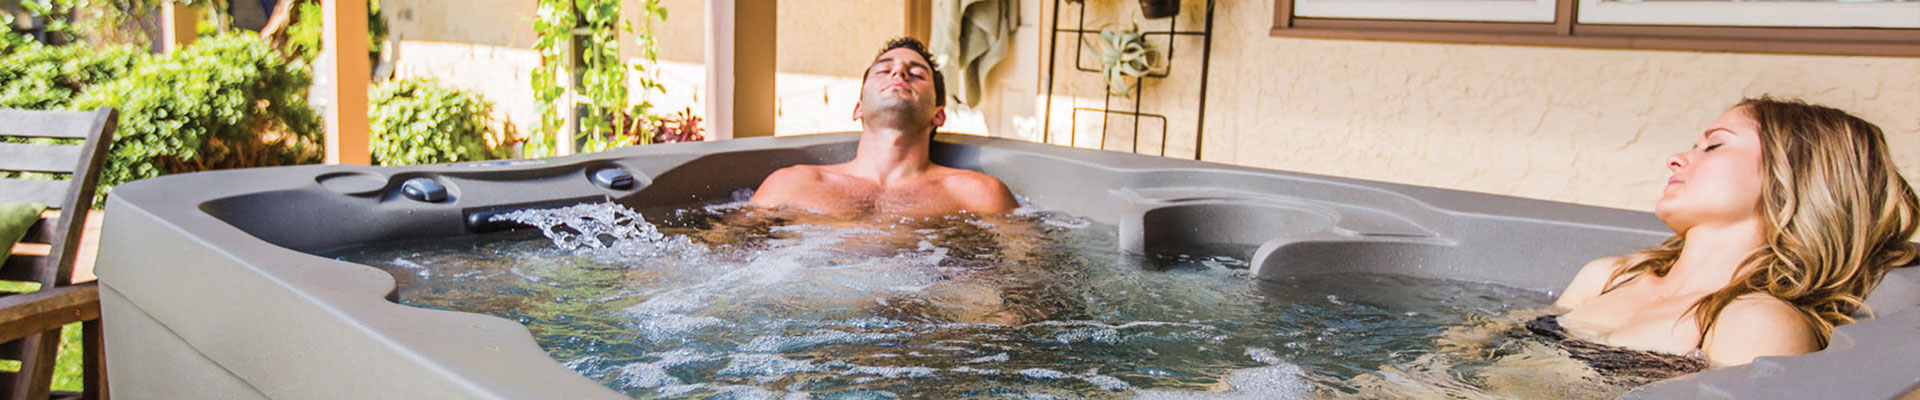 3 Ways to Use a Spa to Ease Chronic Back Pain, Hot Tubs Keizer